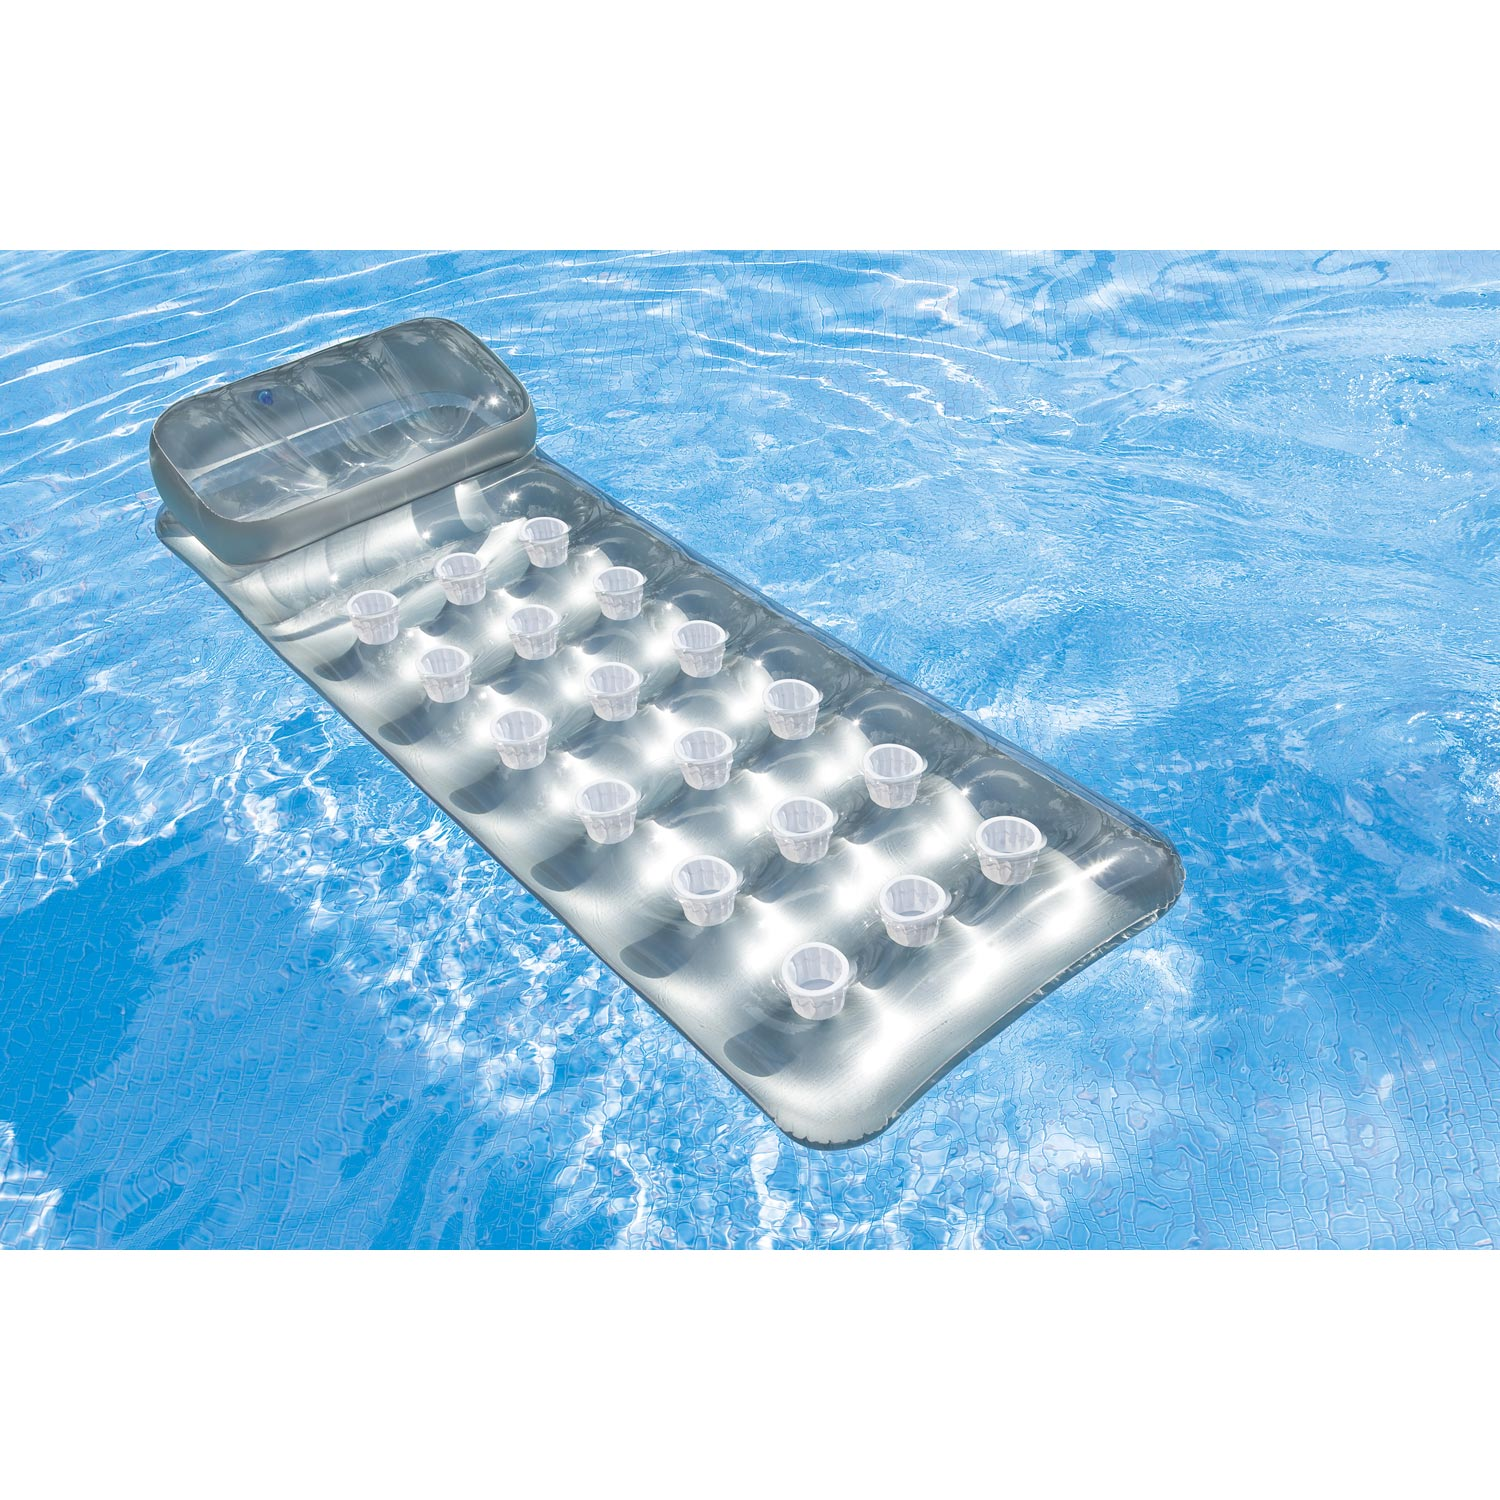 Leroy Merlin Spa Intex piscine hors sol tubulaire intex 465x259x100 cm